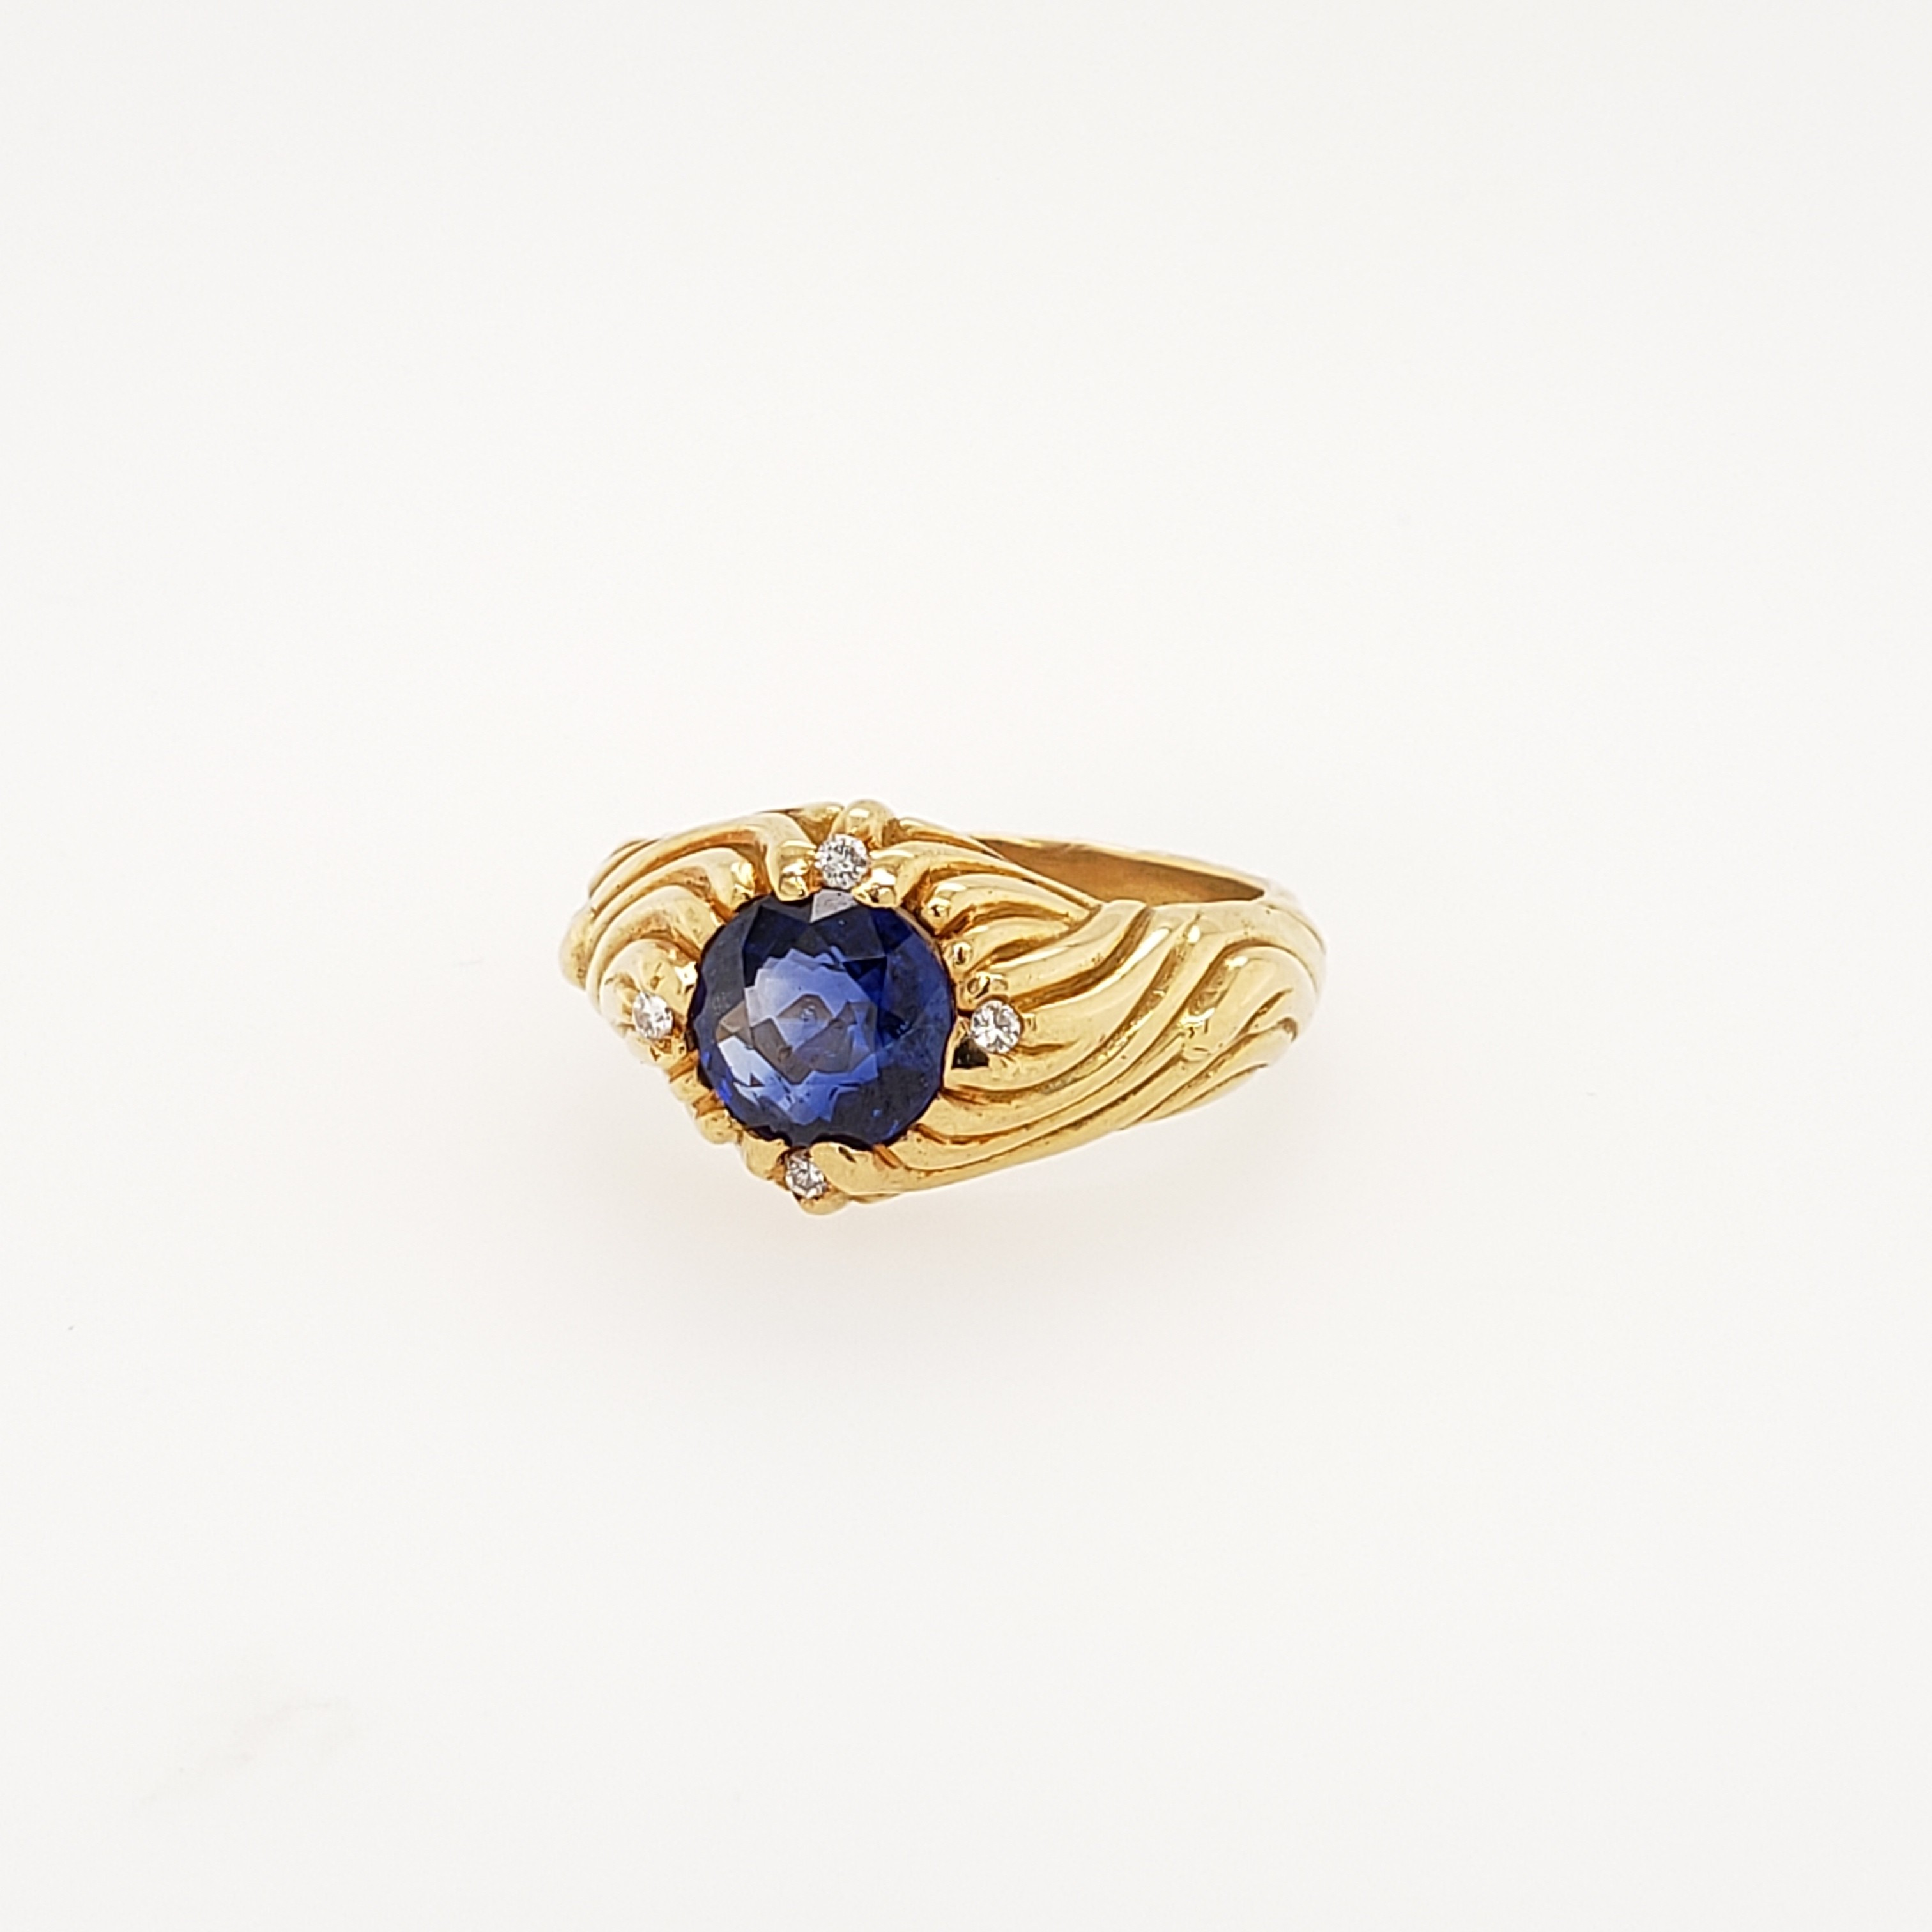 18KT YELLOW GOLD SAPPHIRE W/ DIAMOND ACCENT RING